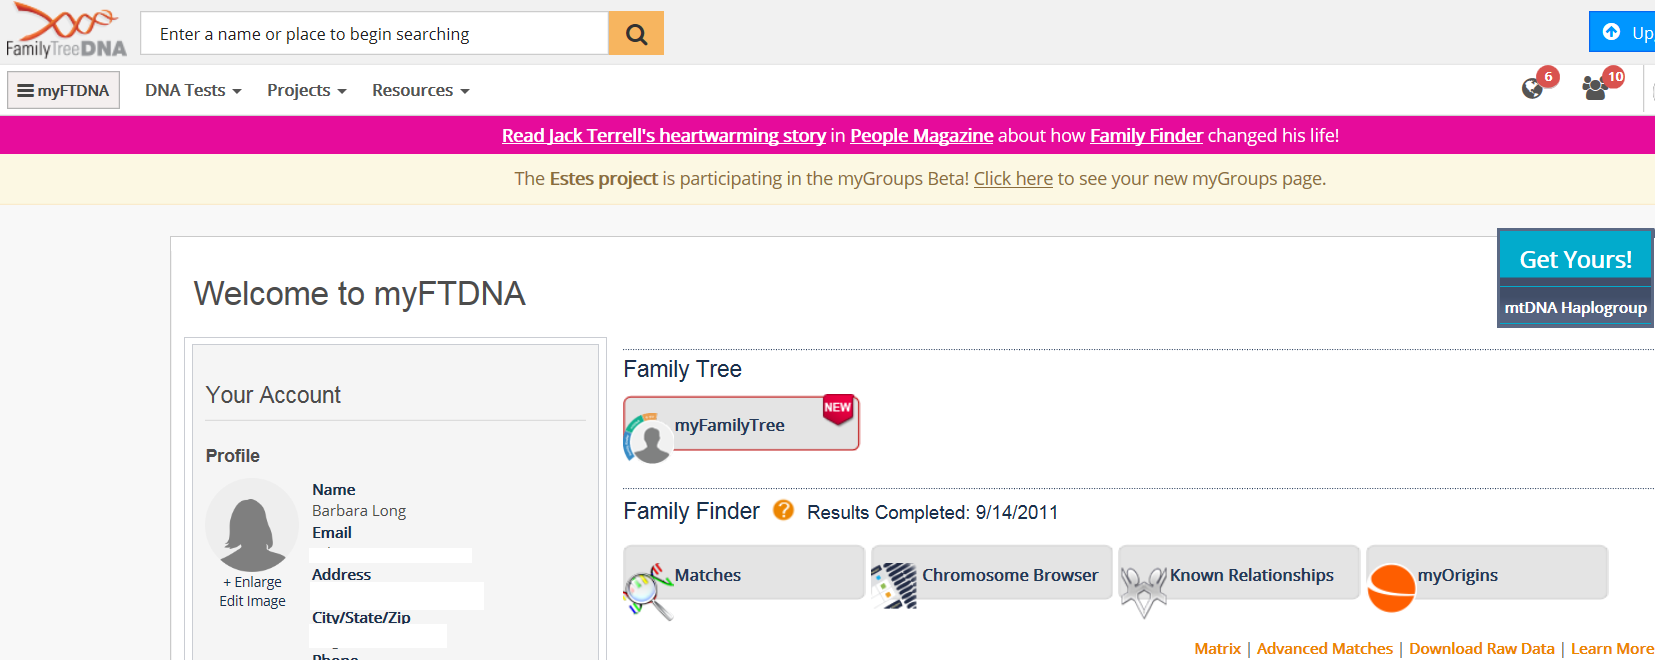 concepts downloading autosomal data from family tree dna